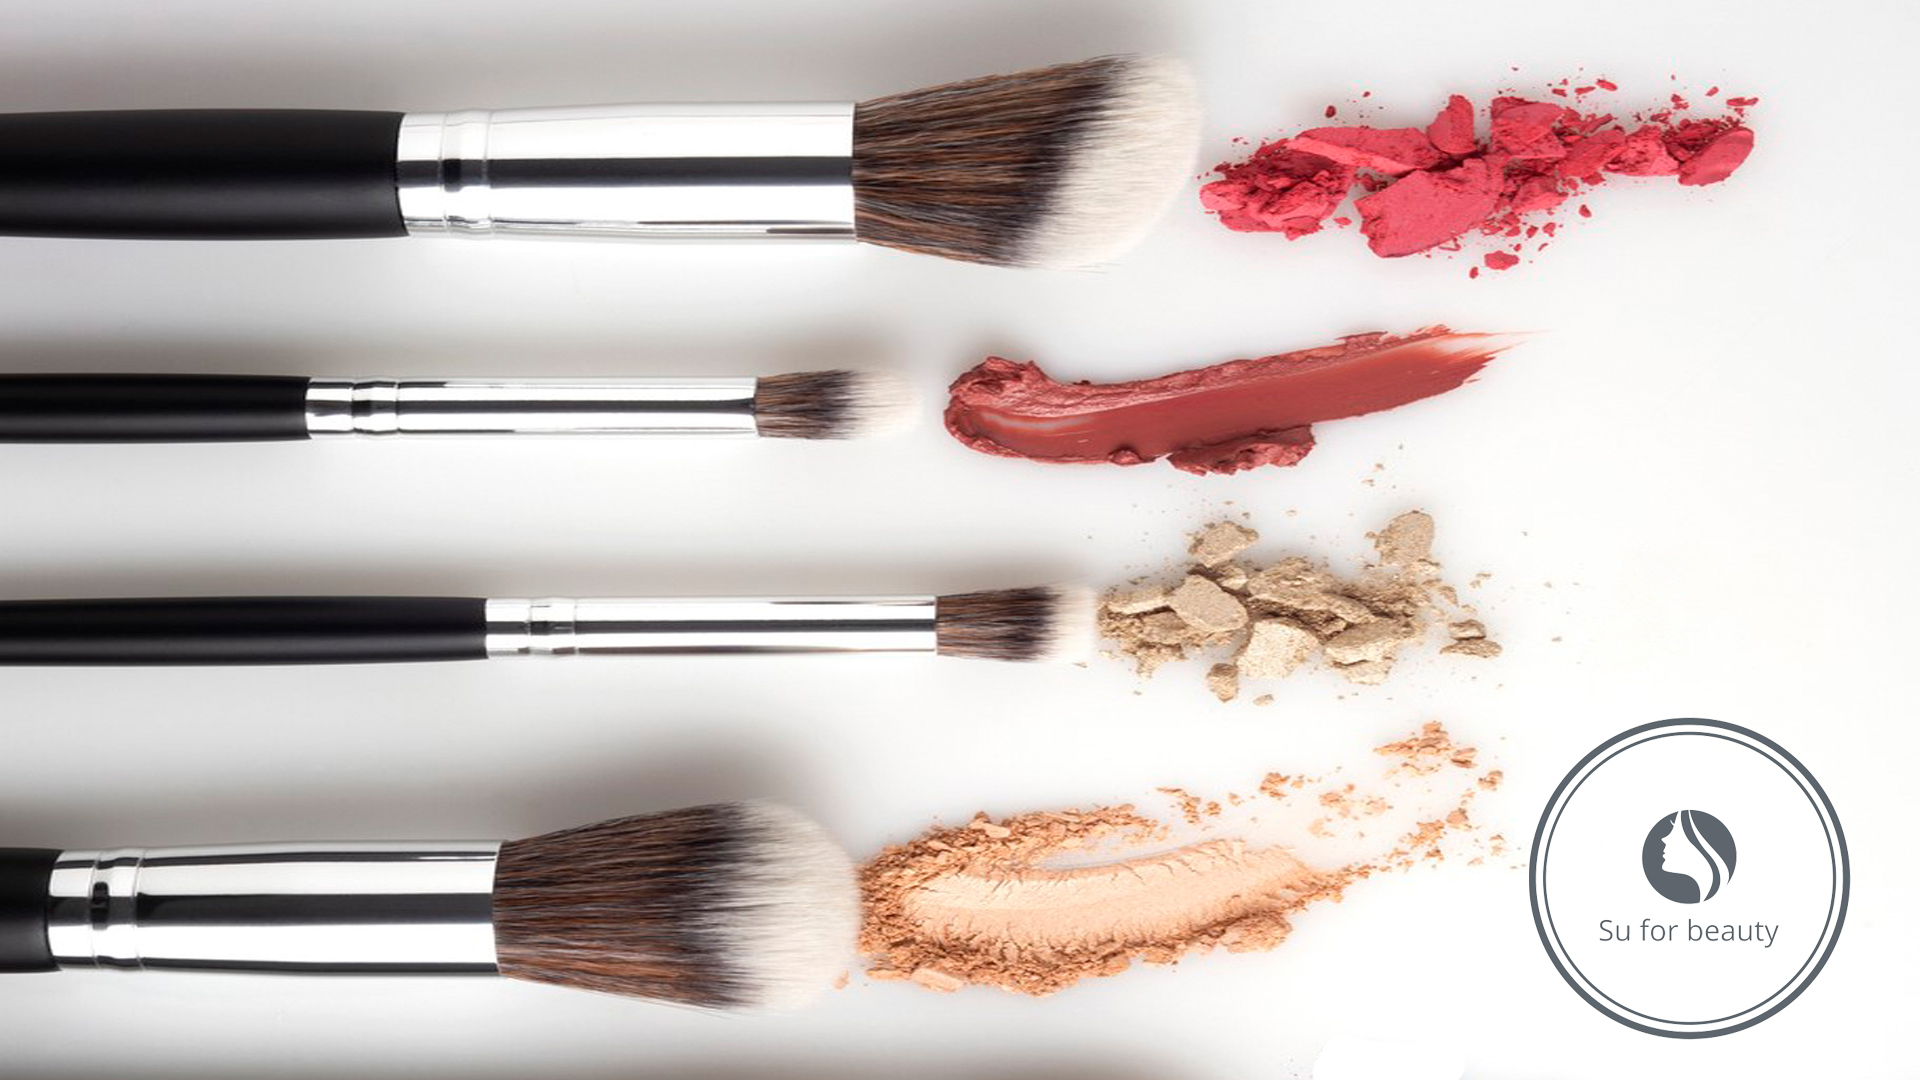 su-for-beauty-Make-up